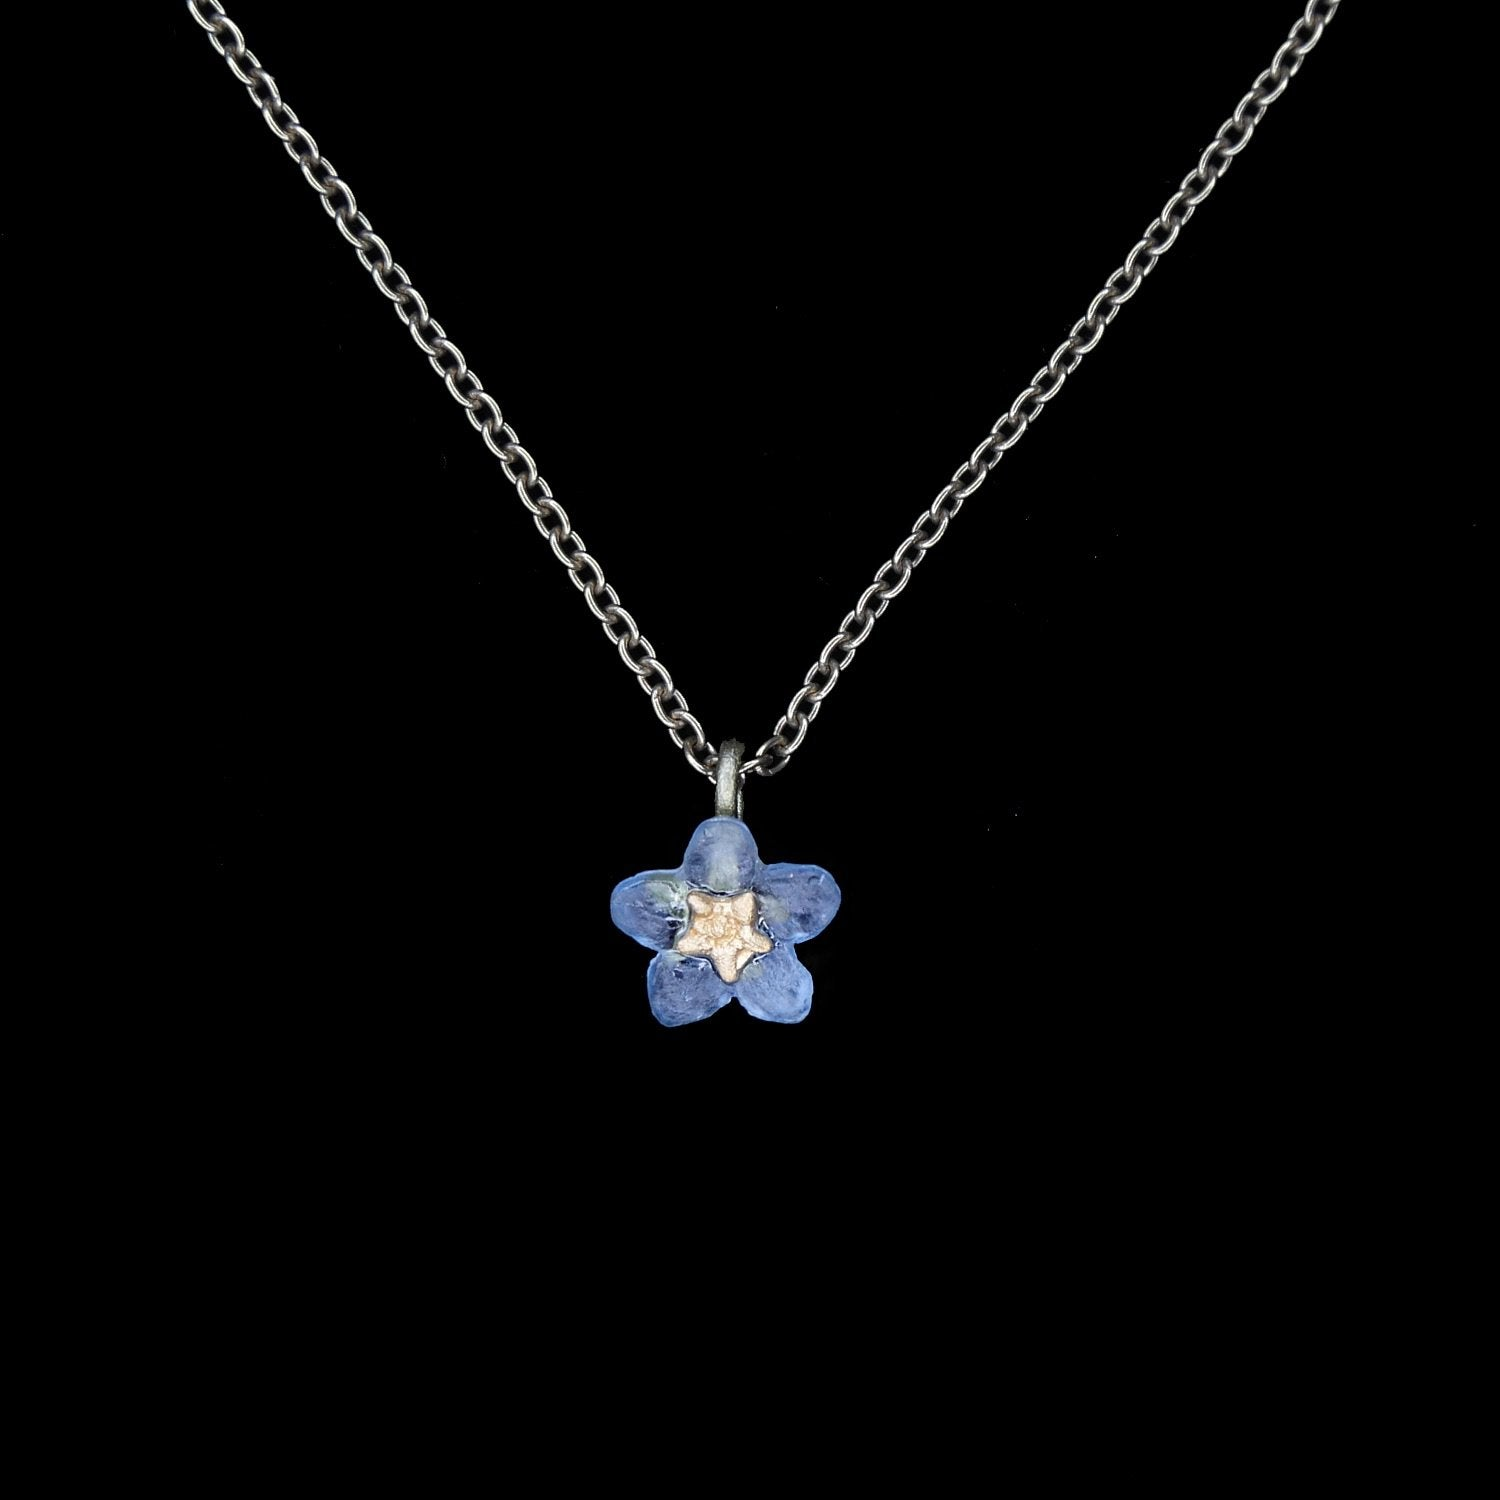 Forget Me Not Pendant - Single Flower